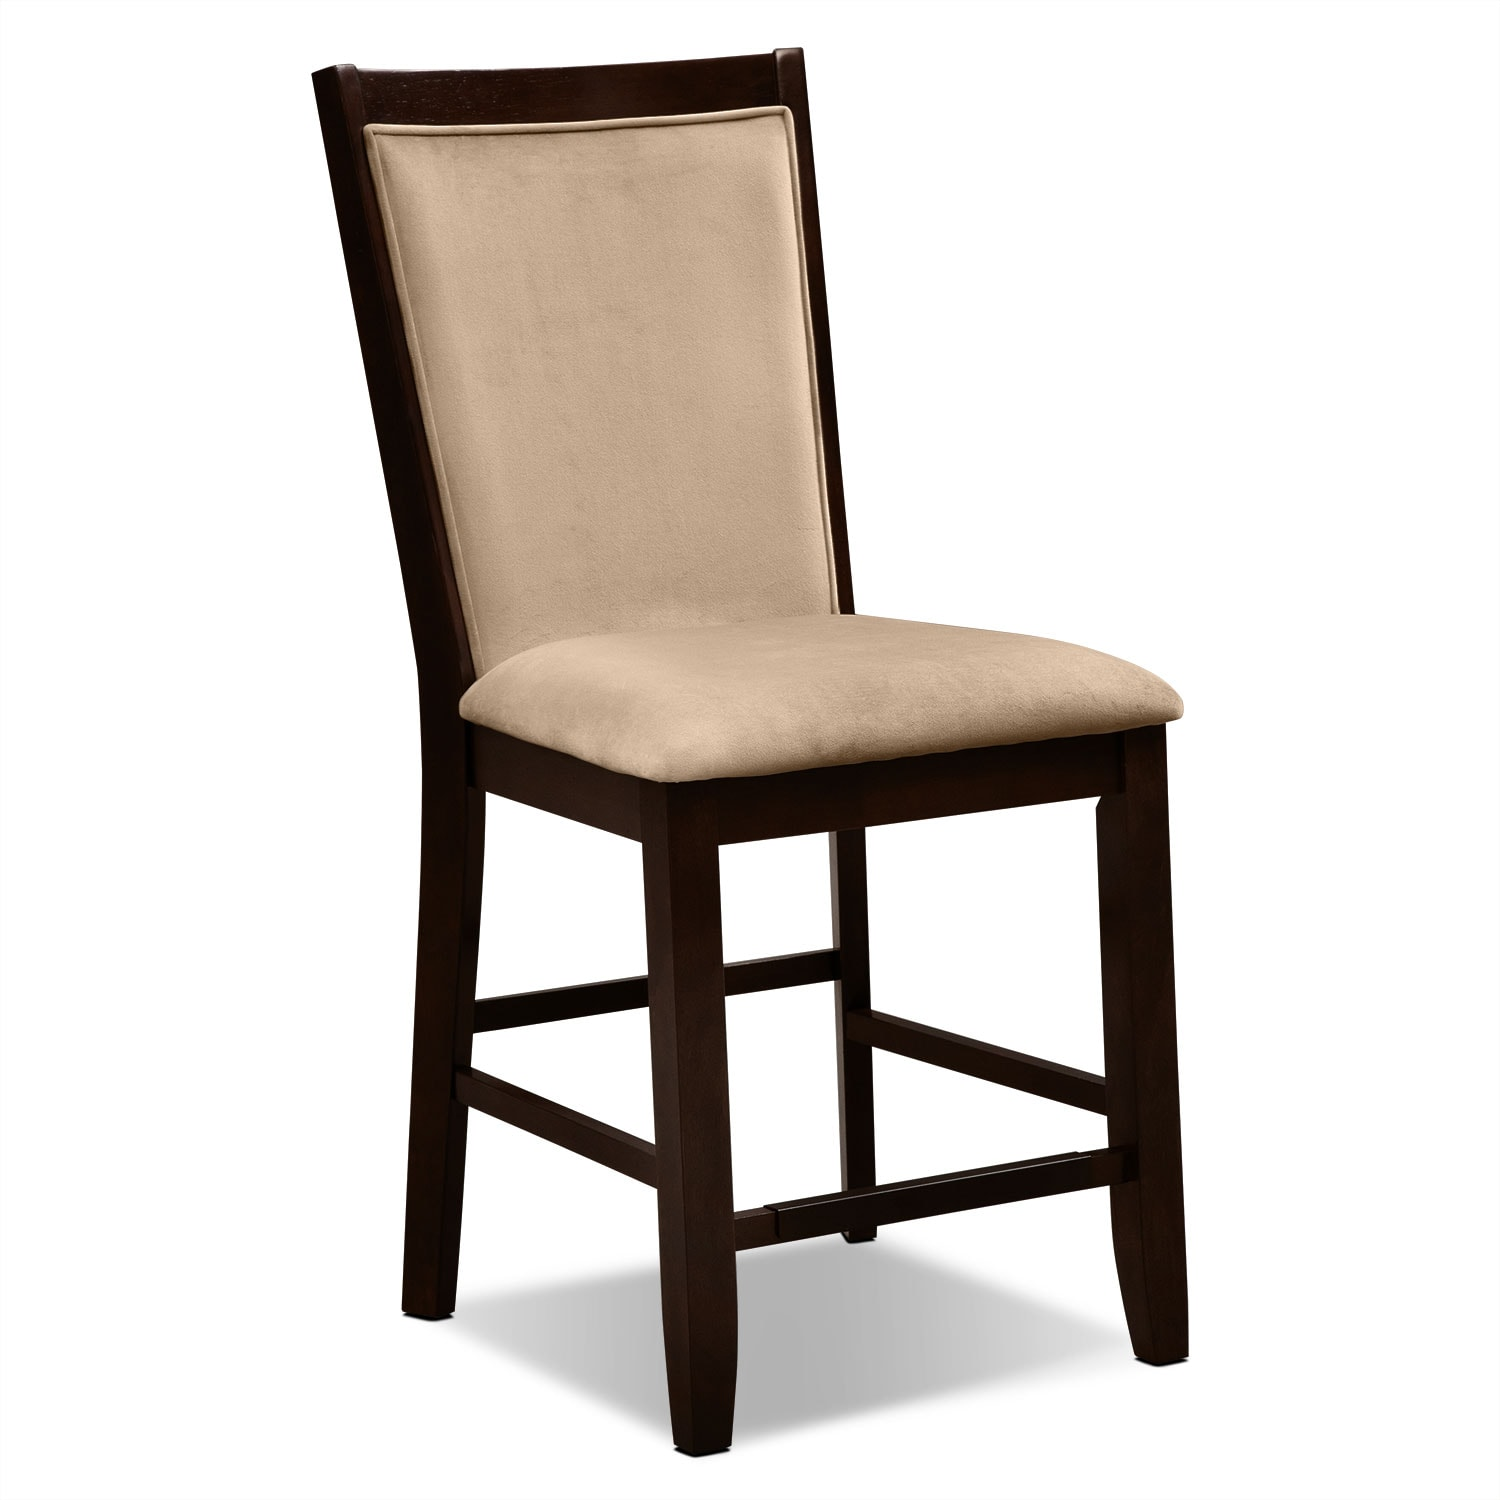 Silver chair furniture - Click To Change Image